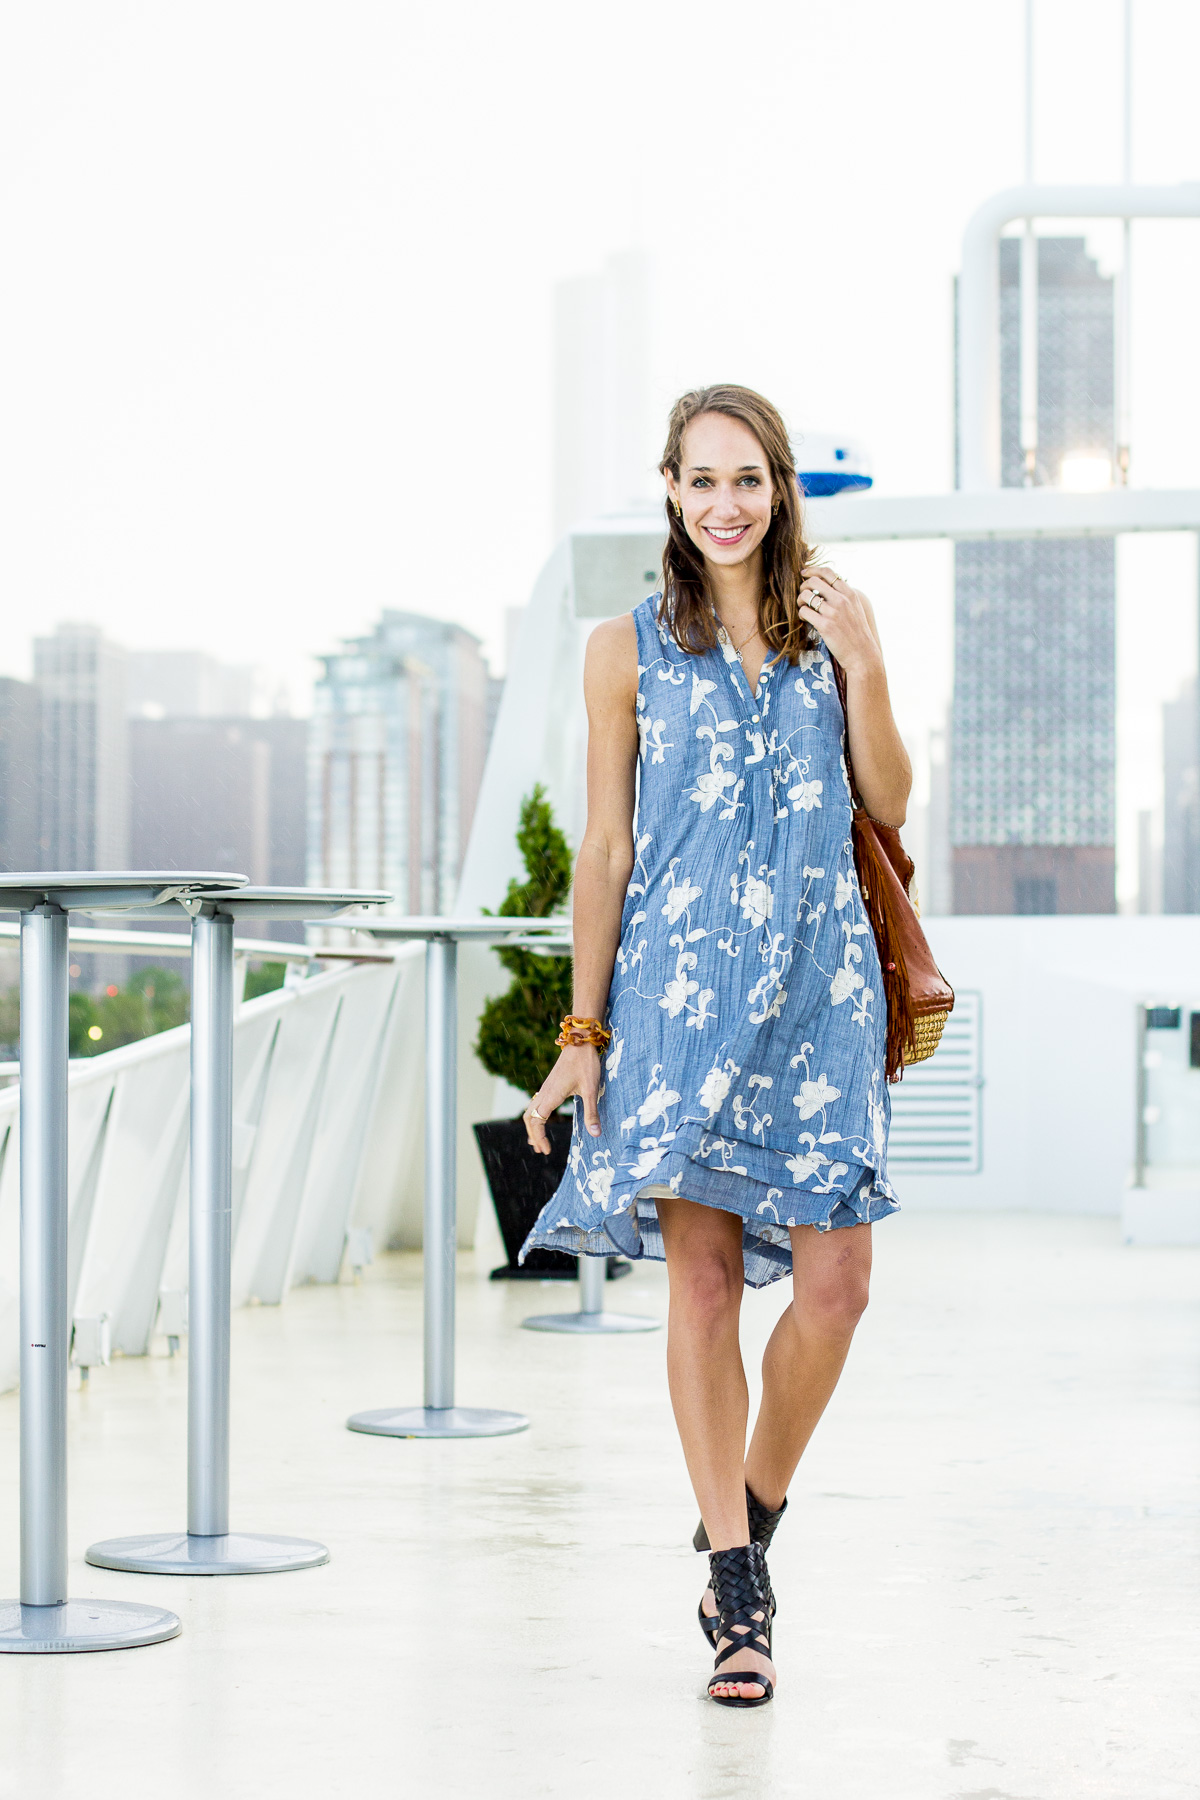 Street style tip of the day: Embroidered shirtdress